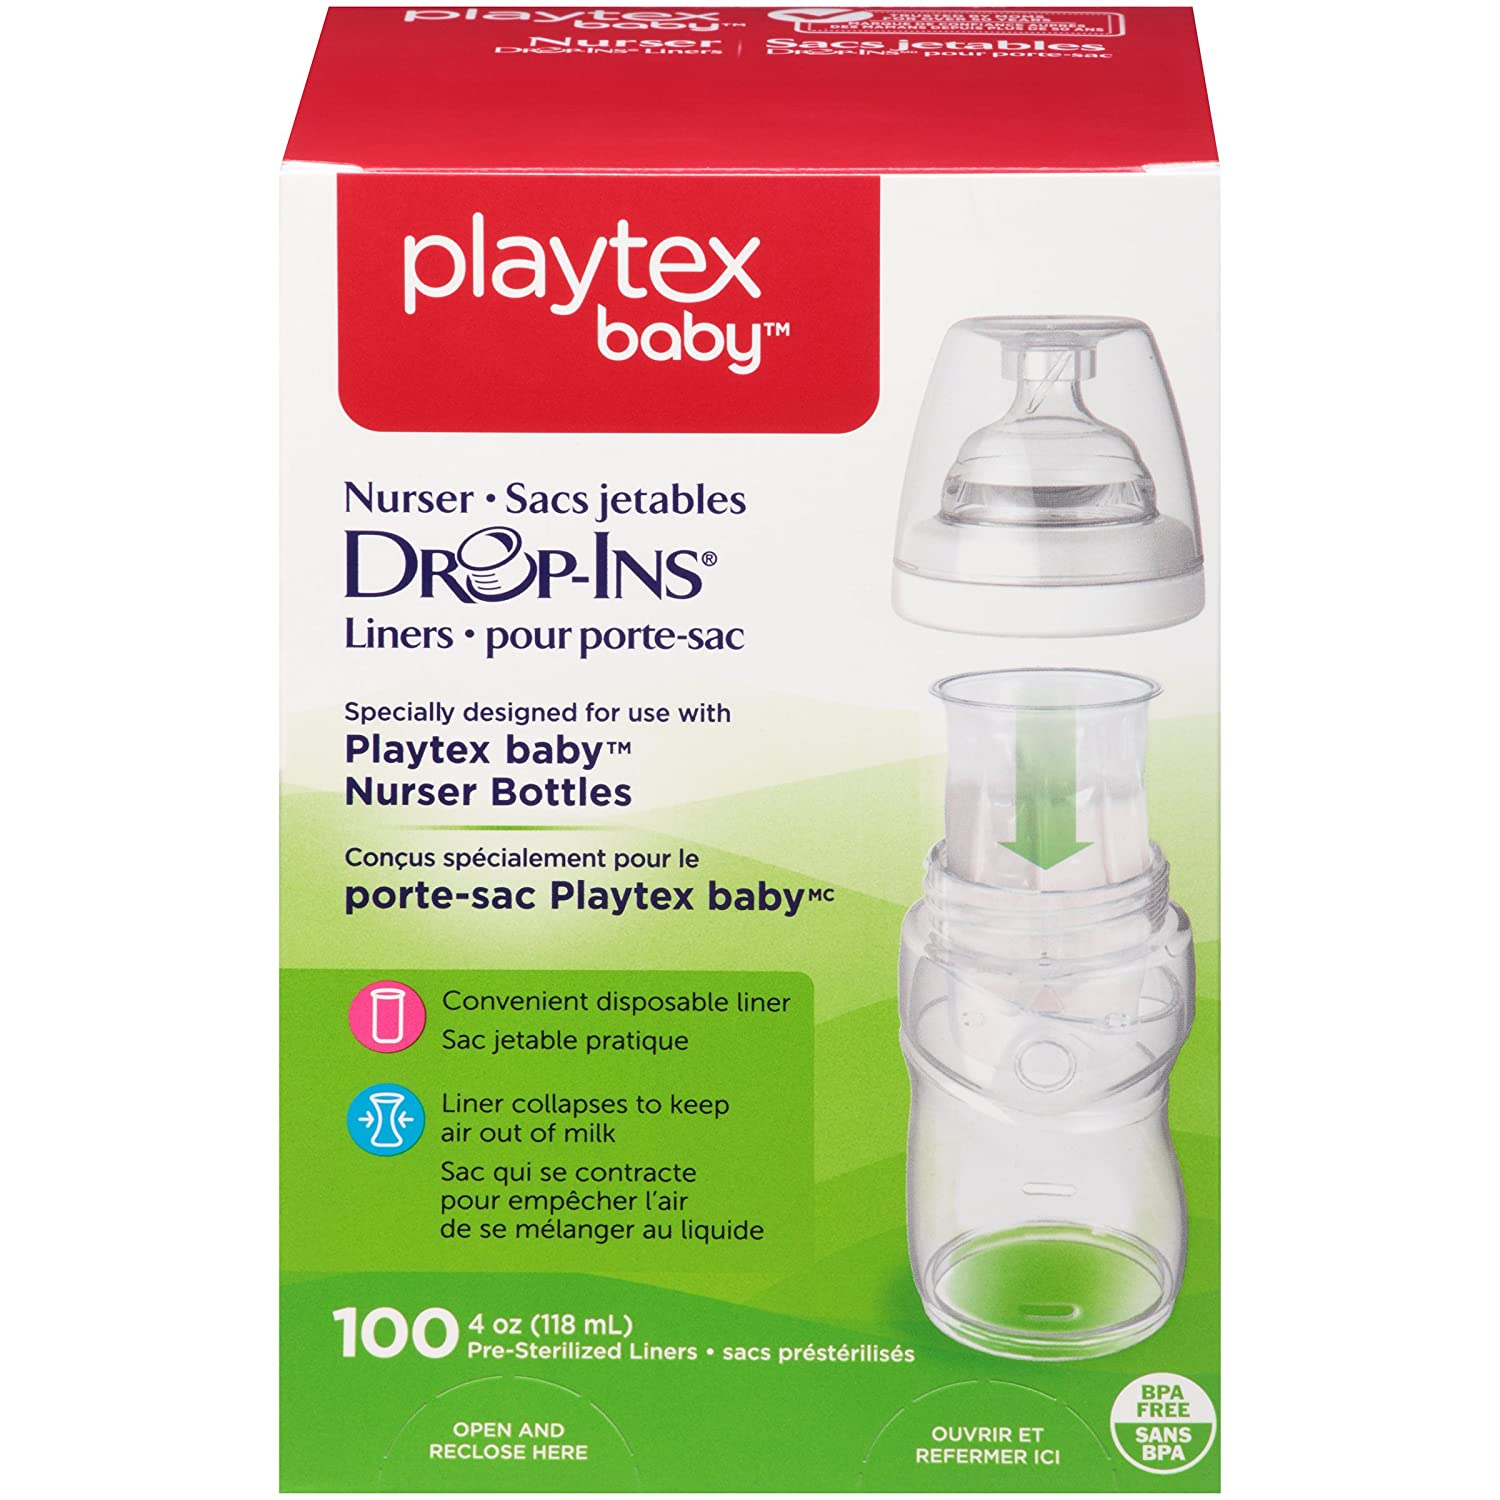 Playtex Baby BPA-Free Nurser Baby Bottles Drop-Ins Disposable Bottle Liners, 4 Ounce, 100 Count (Compatible with Playtex Baby Nurser Bottles, 4 Ounce) 5761